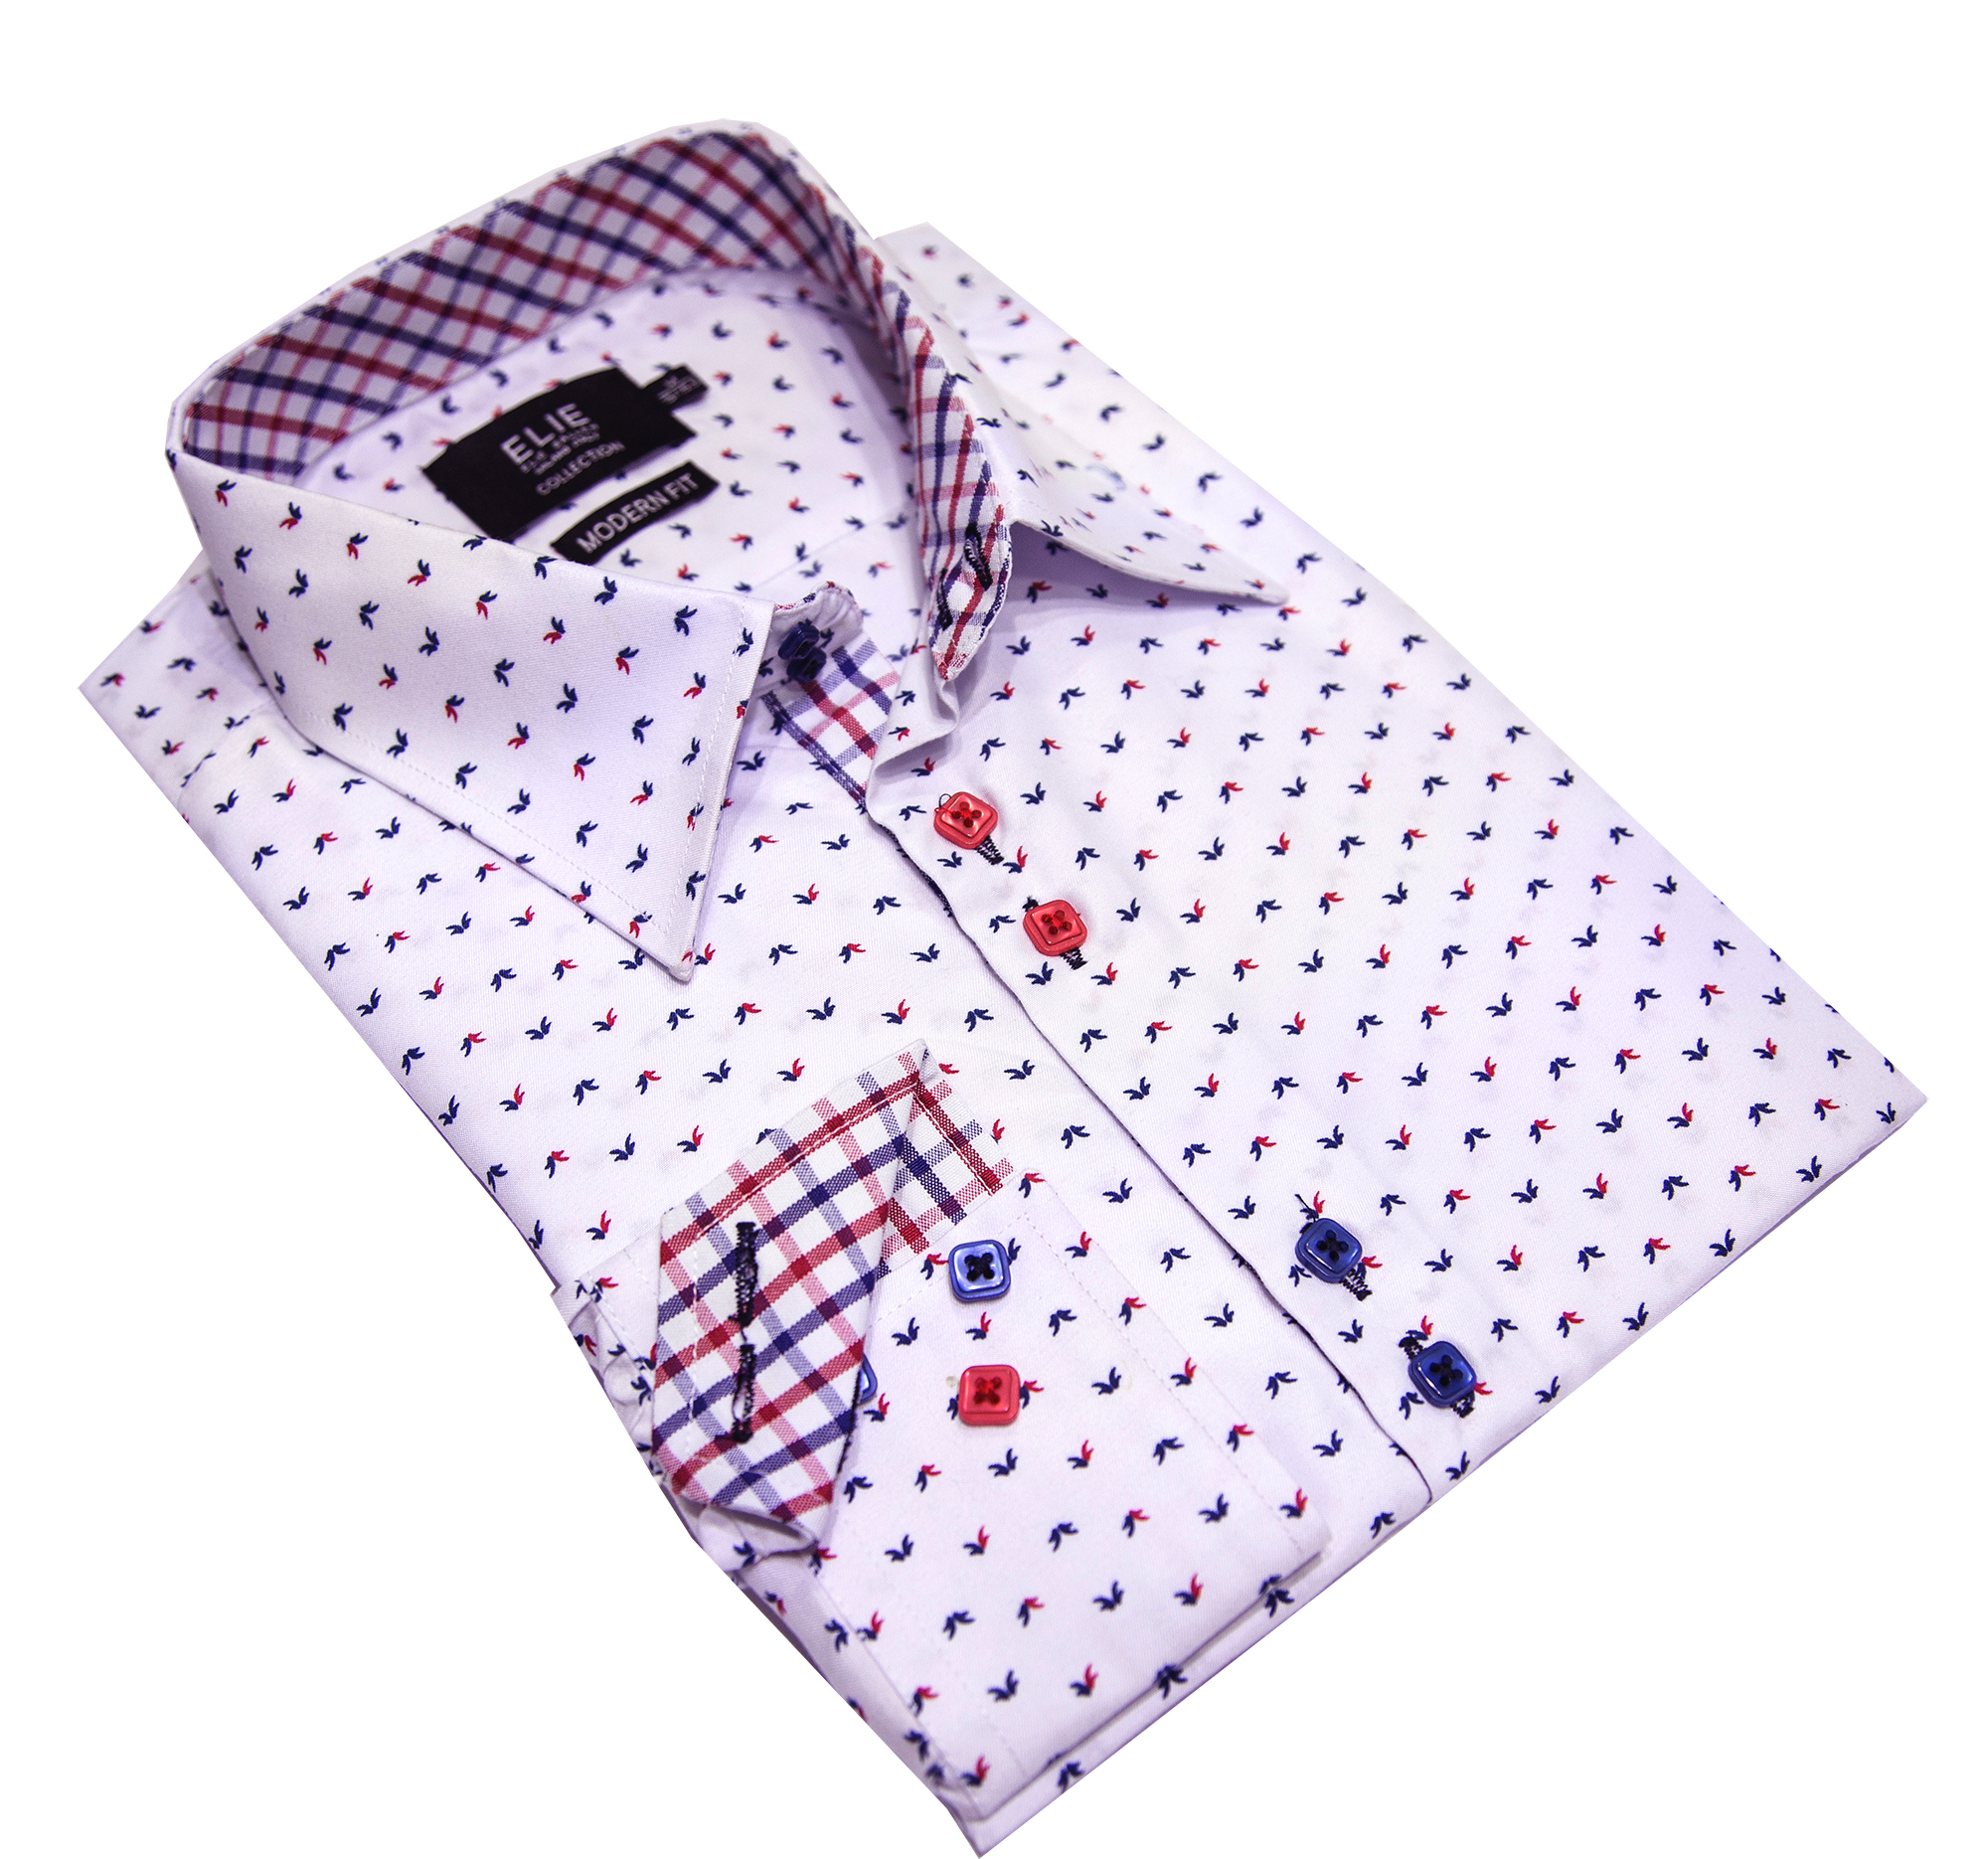 Geometric Navy Boy's Shirts/Button Down CEBSH321B